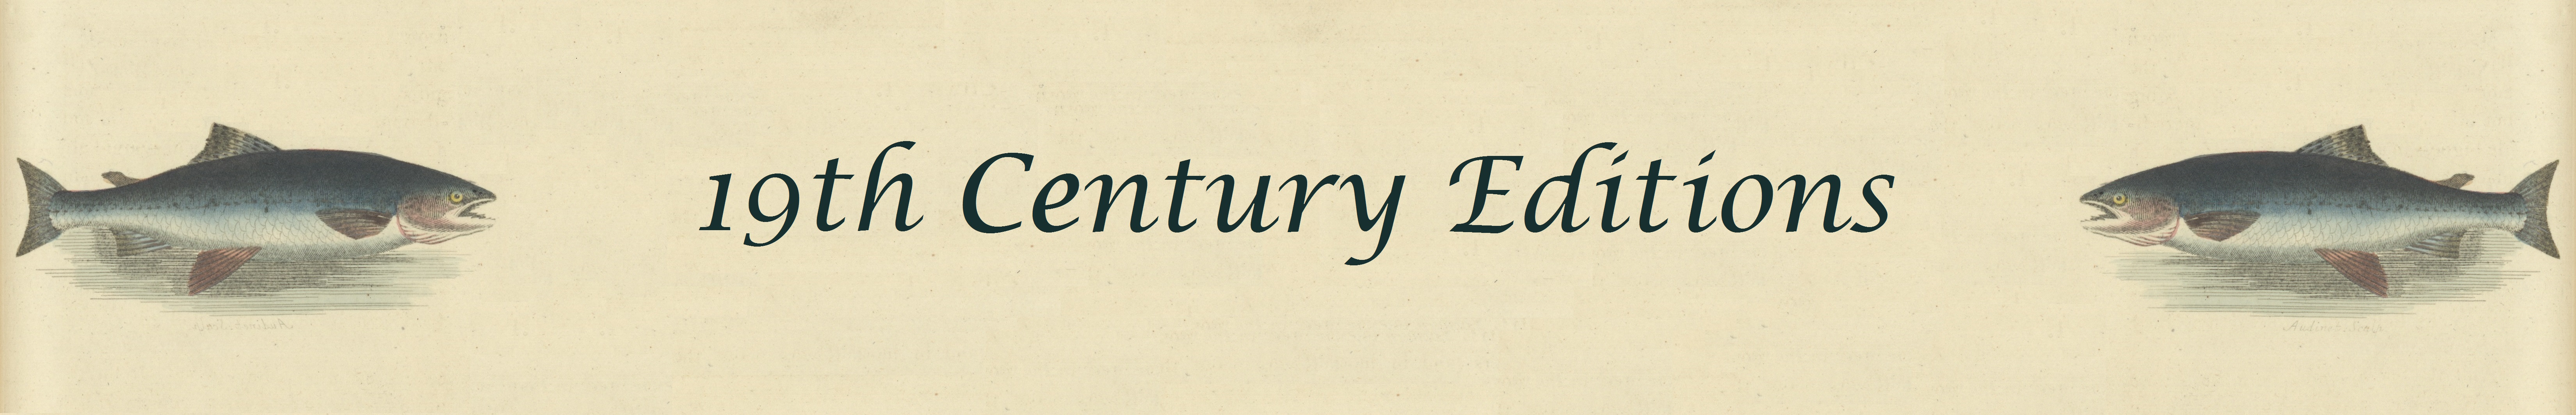 19th Century Page Banner